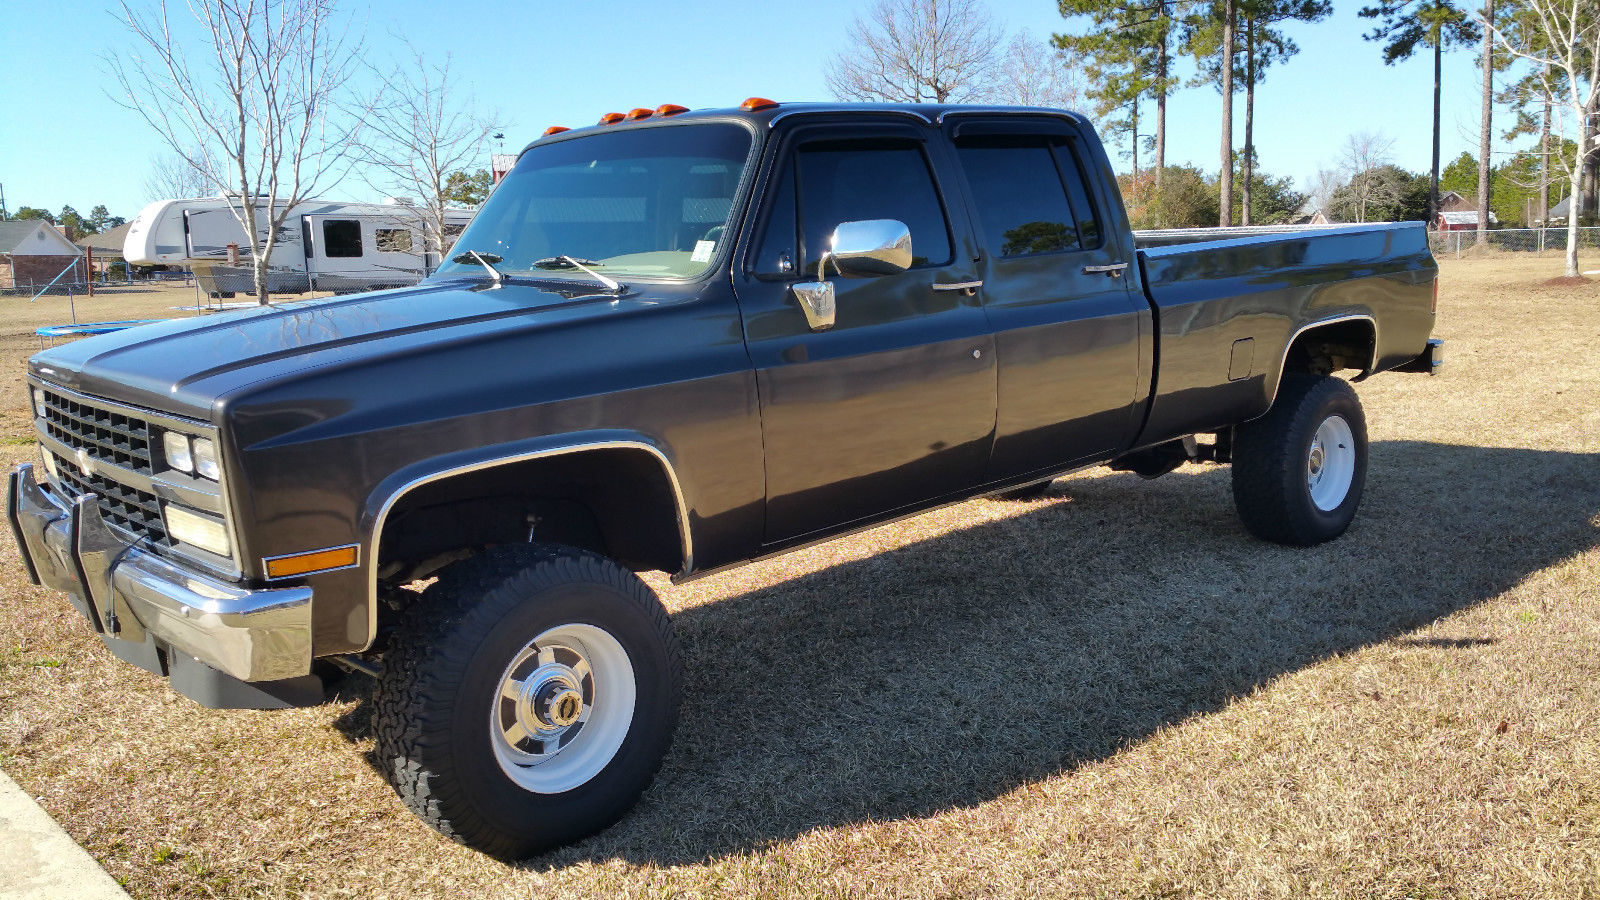 1982 chevy silverado 3500 crew cab long bed 4x4 truck for Classic beds for sale